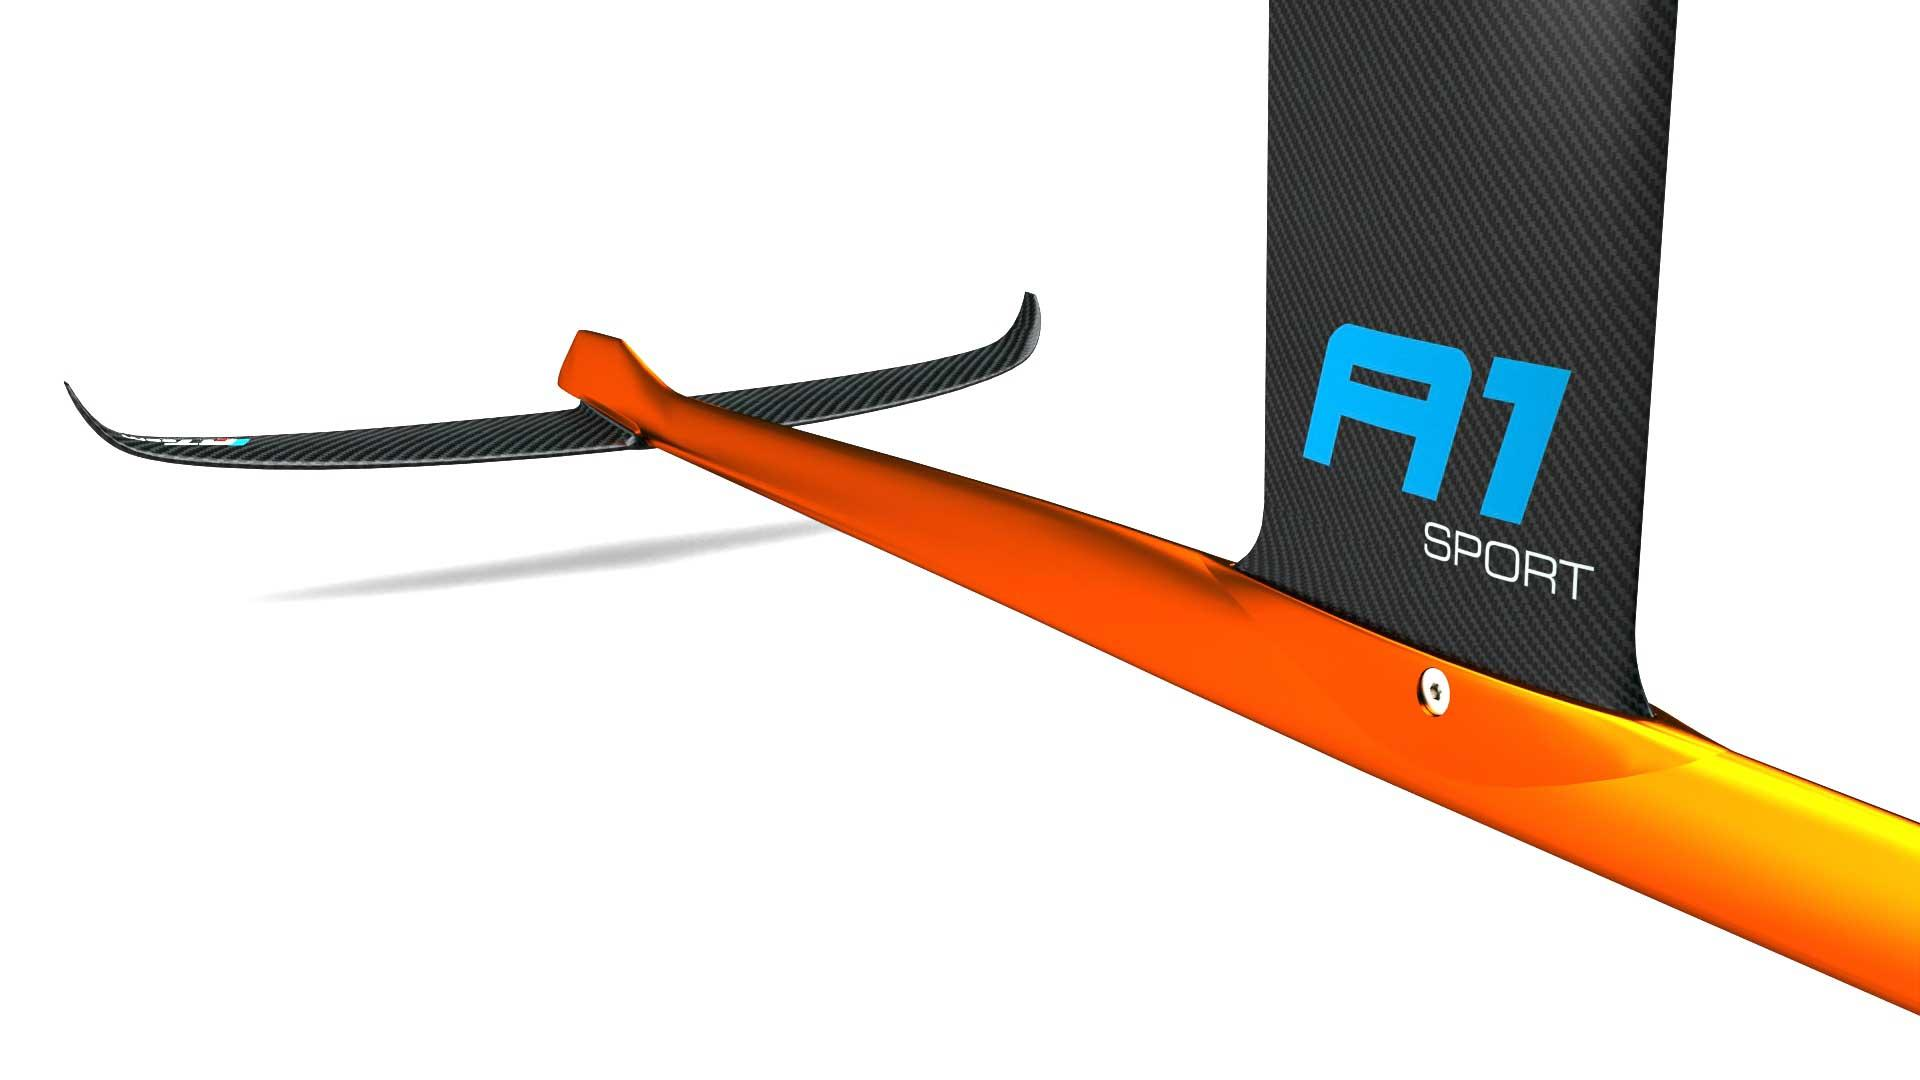 Windfoil alpinefoil a1 sport carbon regatta 1100 10